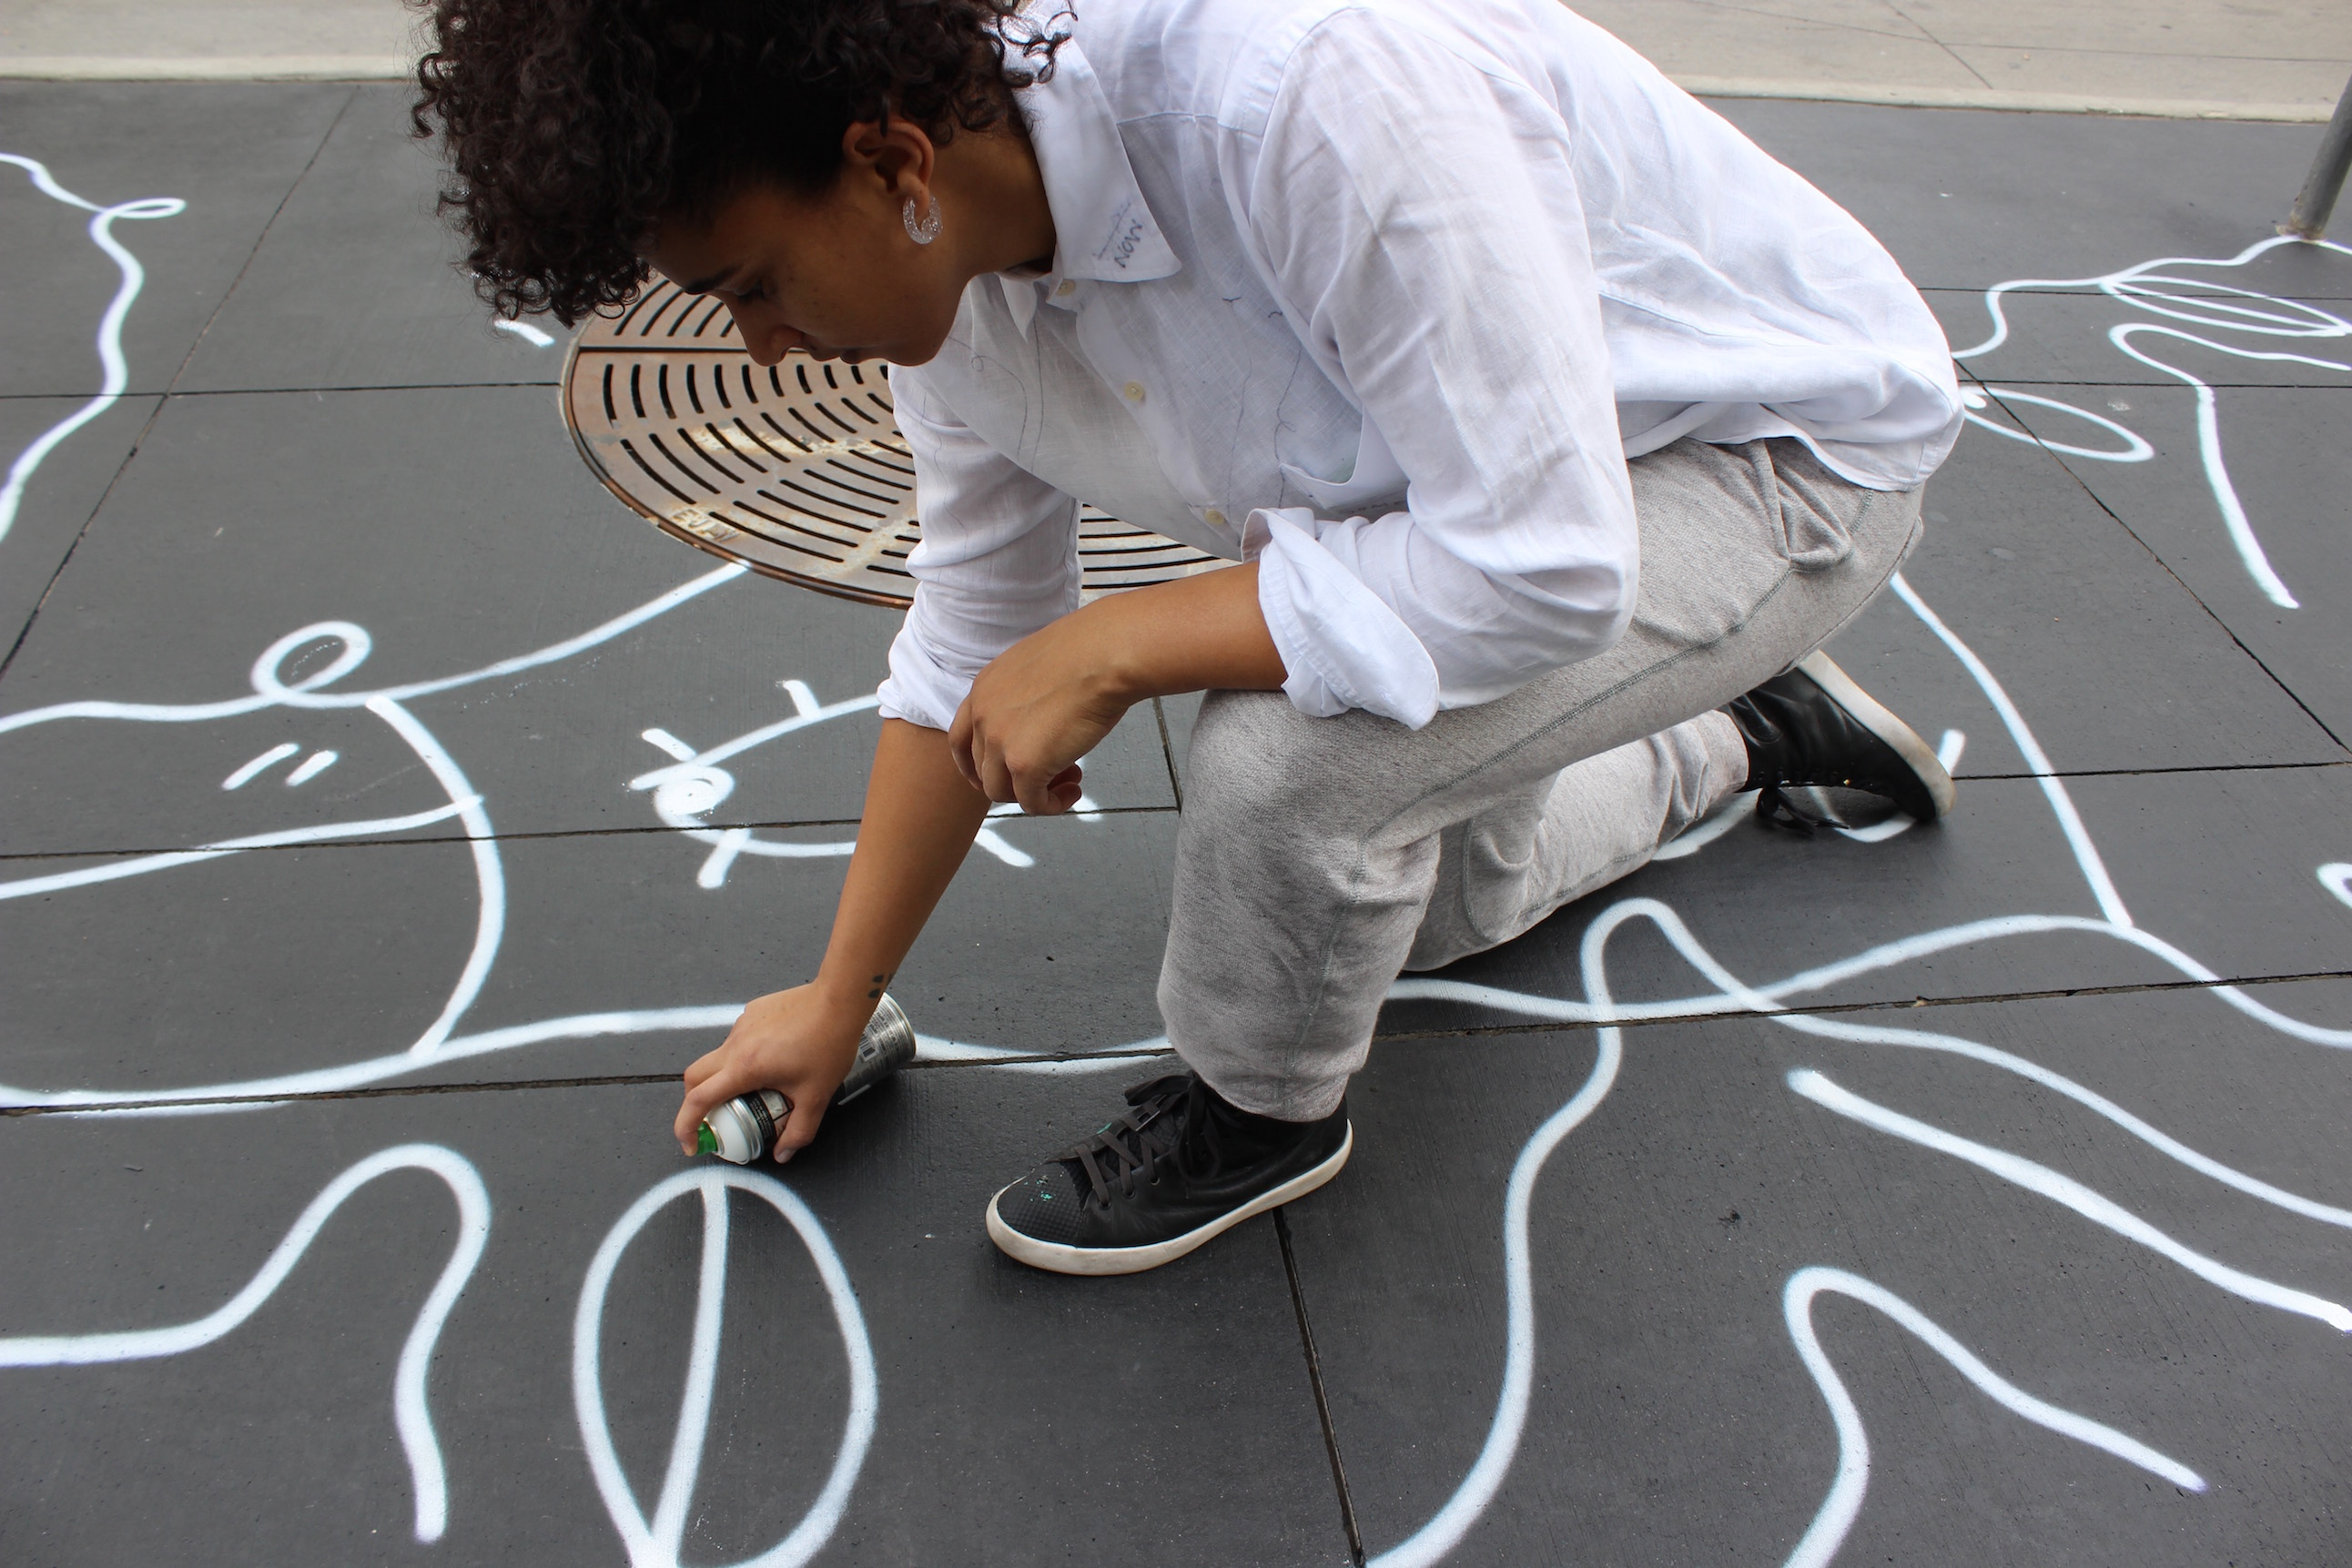 Photos Shantell Martin, Cori Anderson, 303 Magazine, Denver Theatre District, Nine Dot Arts